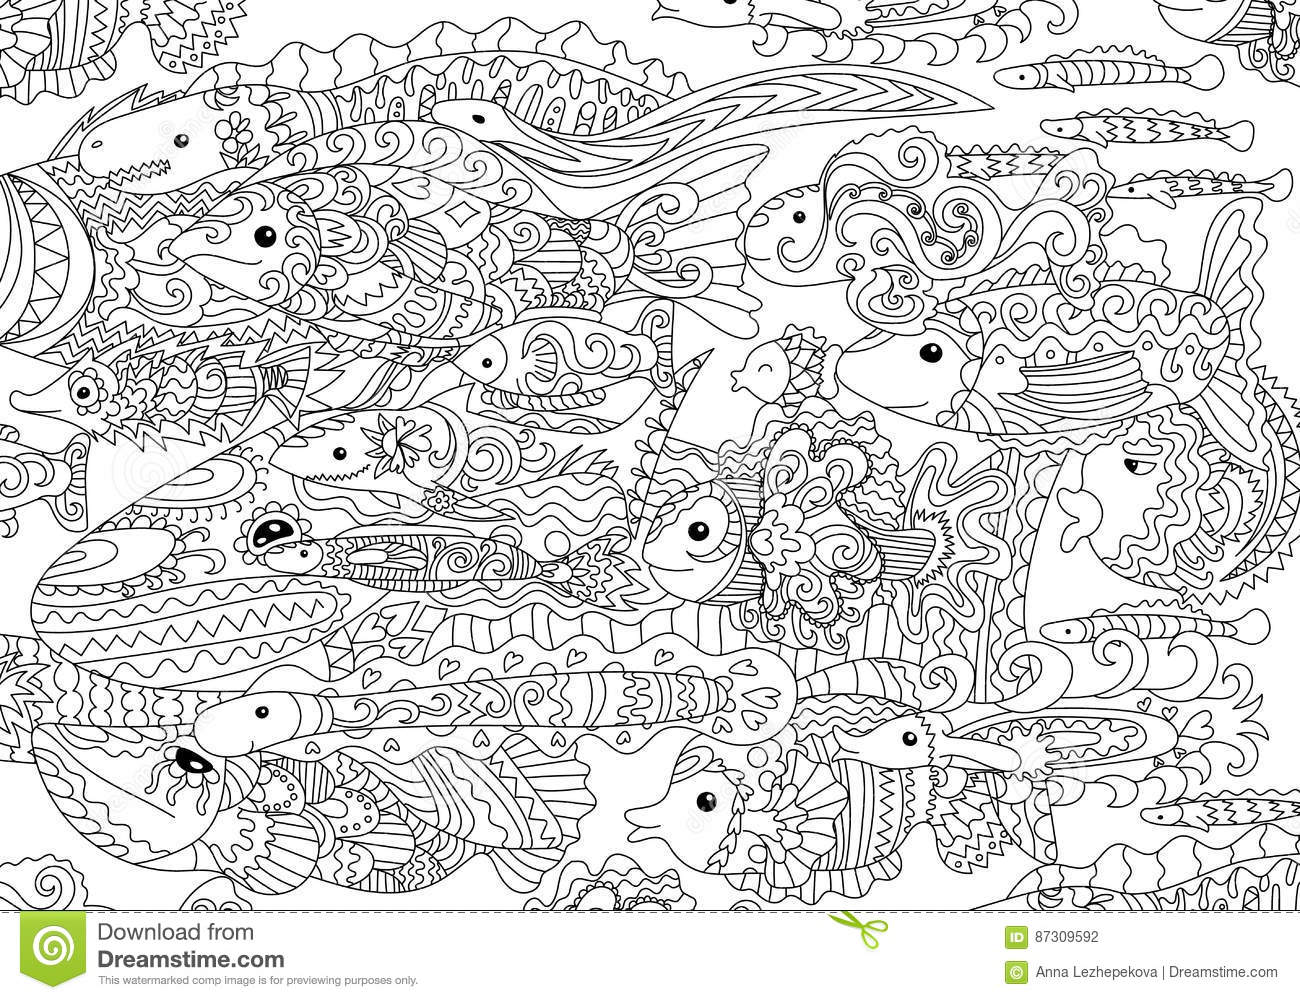 lot zentangle fish floats adult antistress coloring page tracery style black white hand drawn doodle oceanic animals